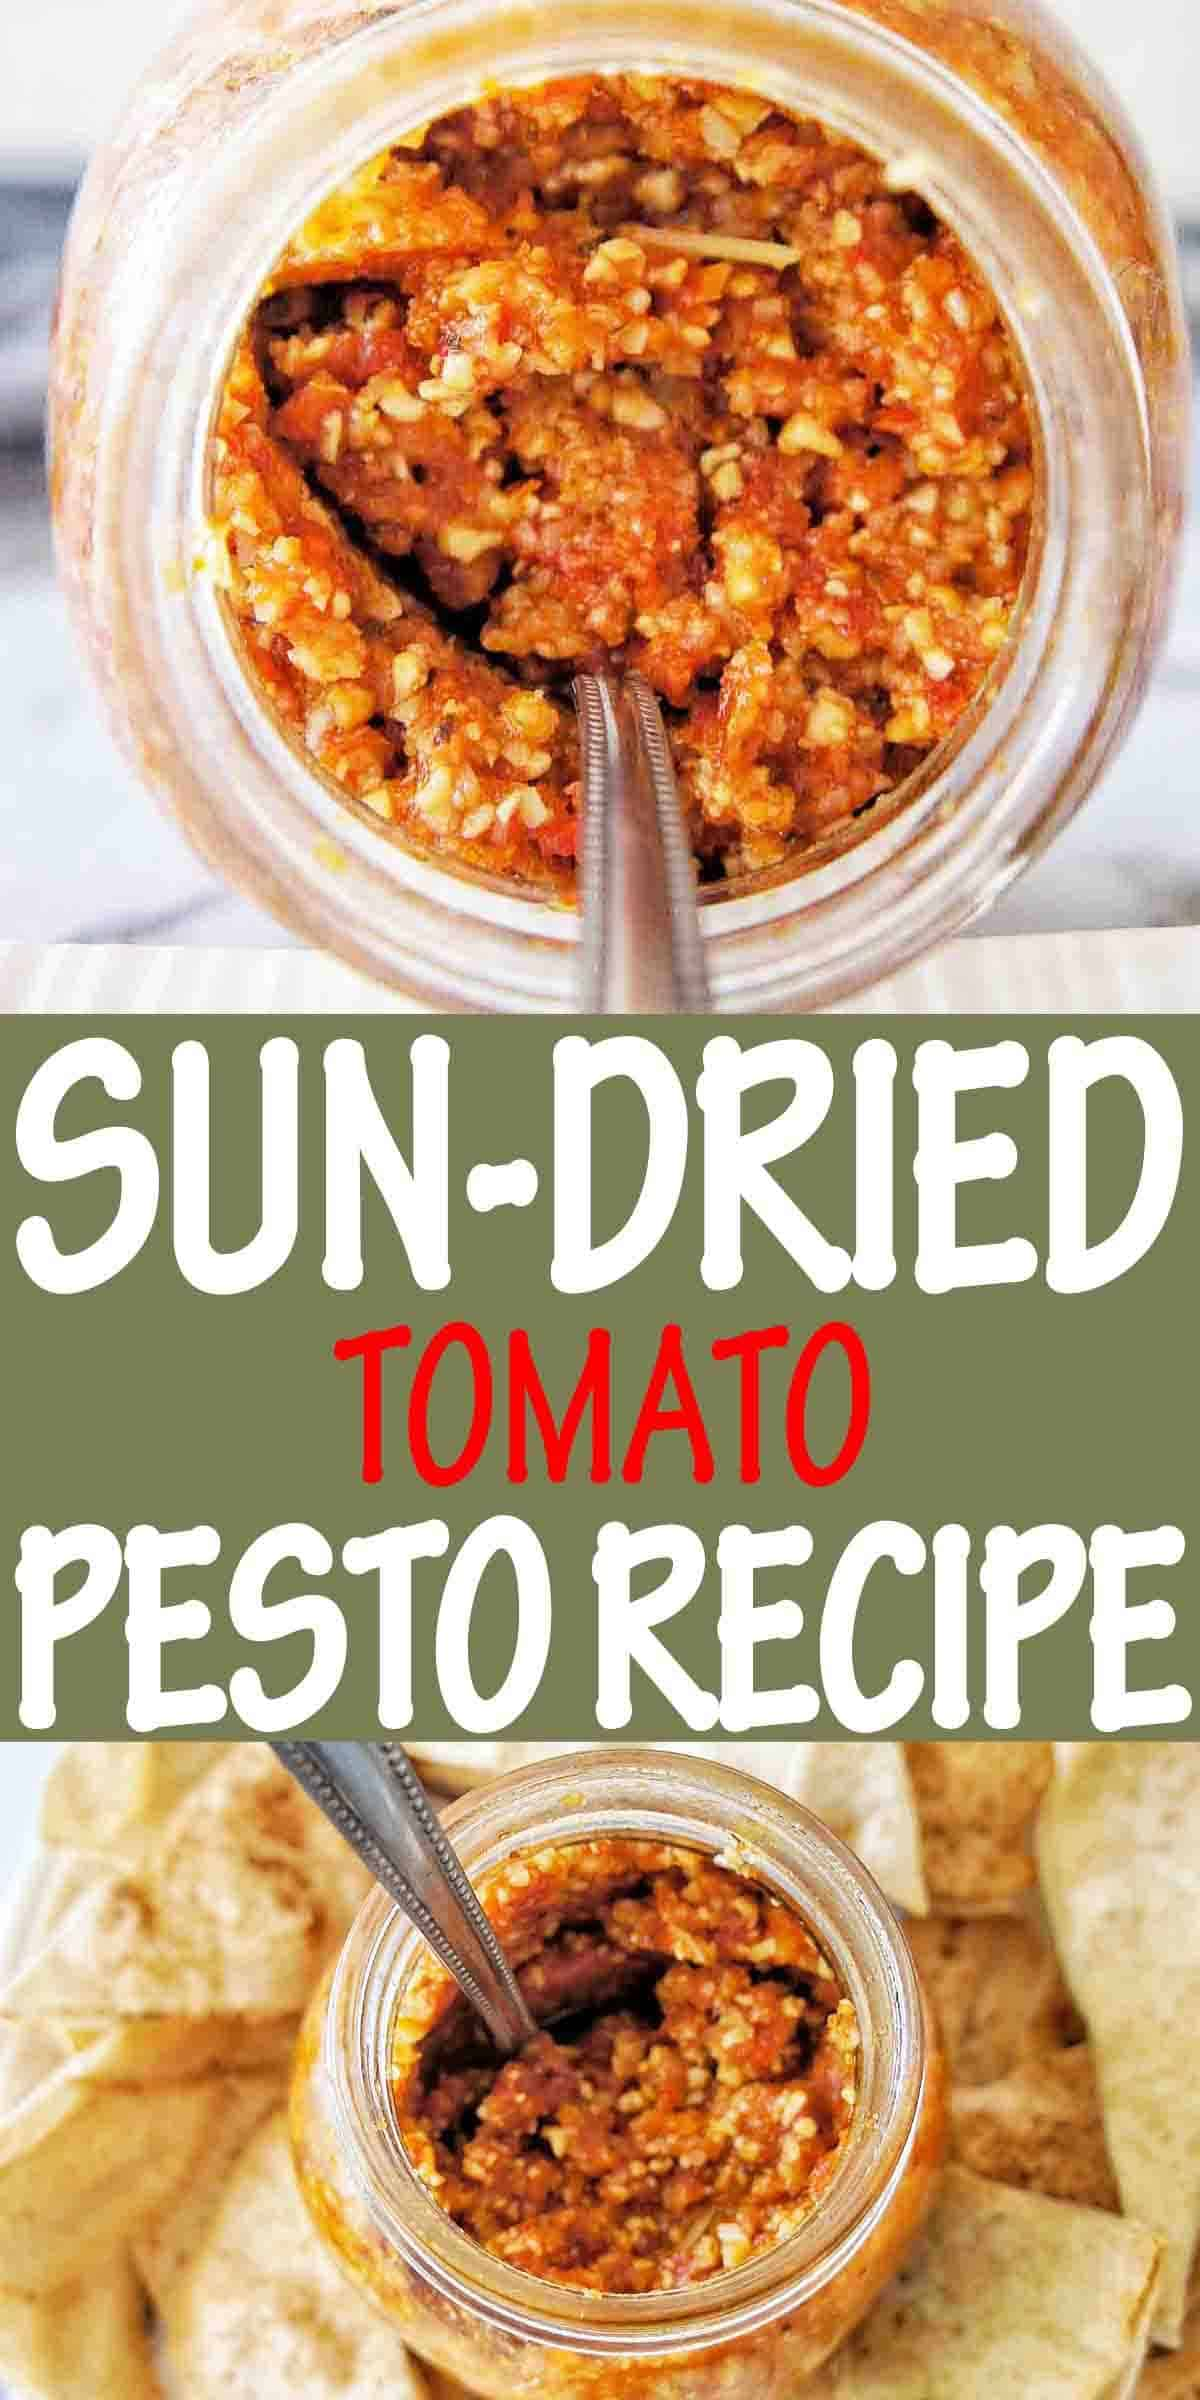 Sun-Dried Tomato Pesto with text over lay